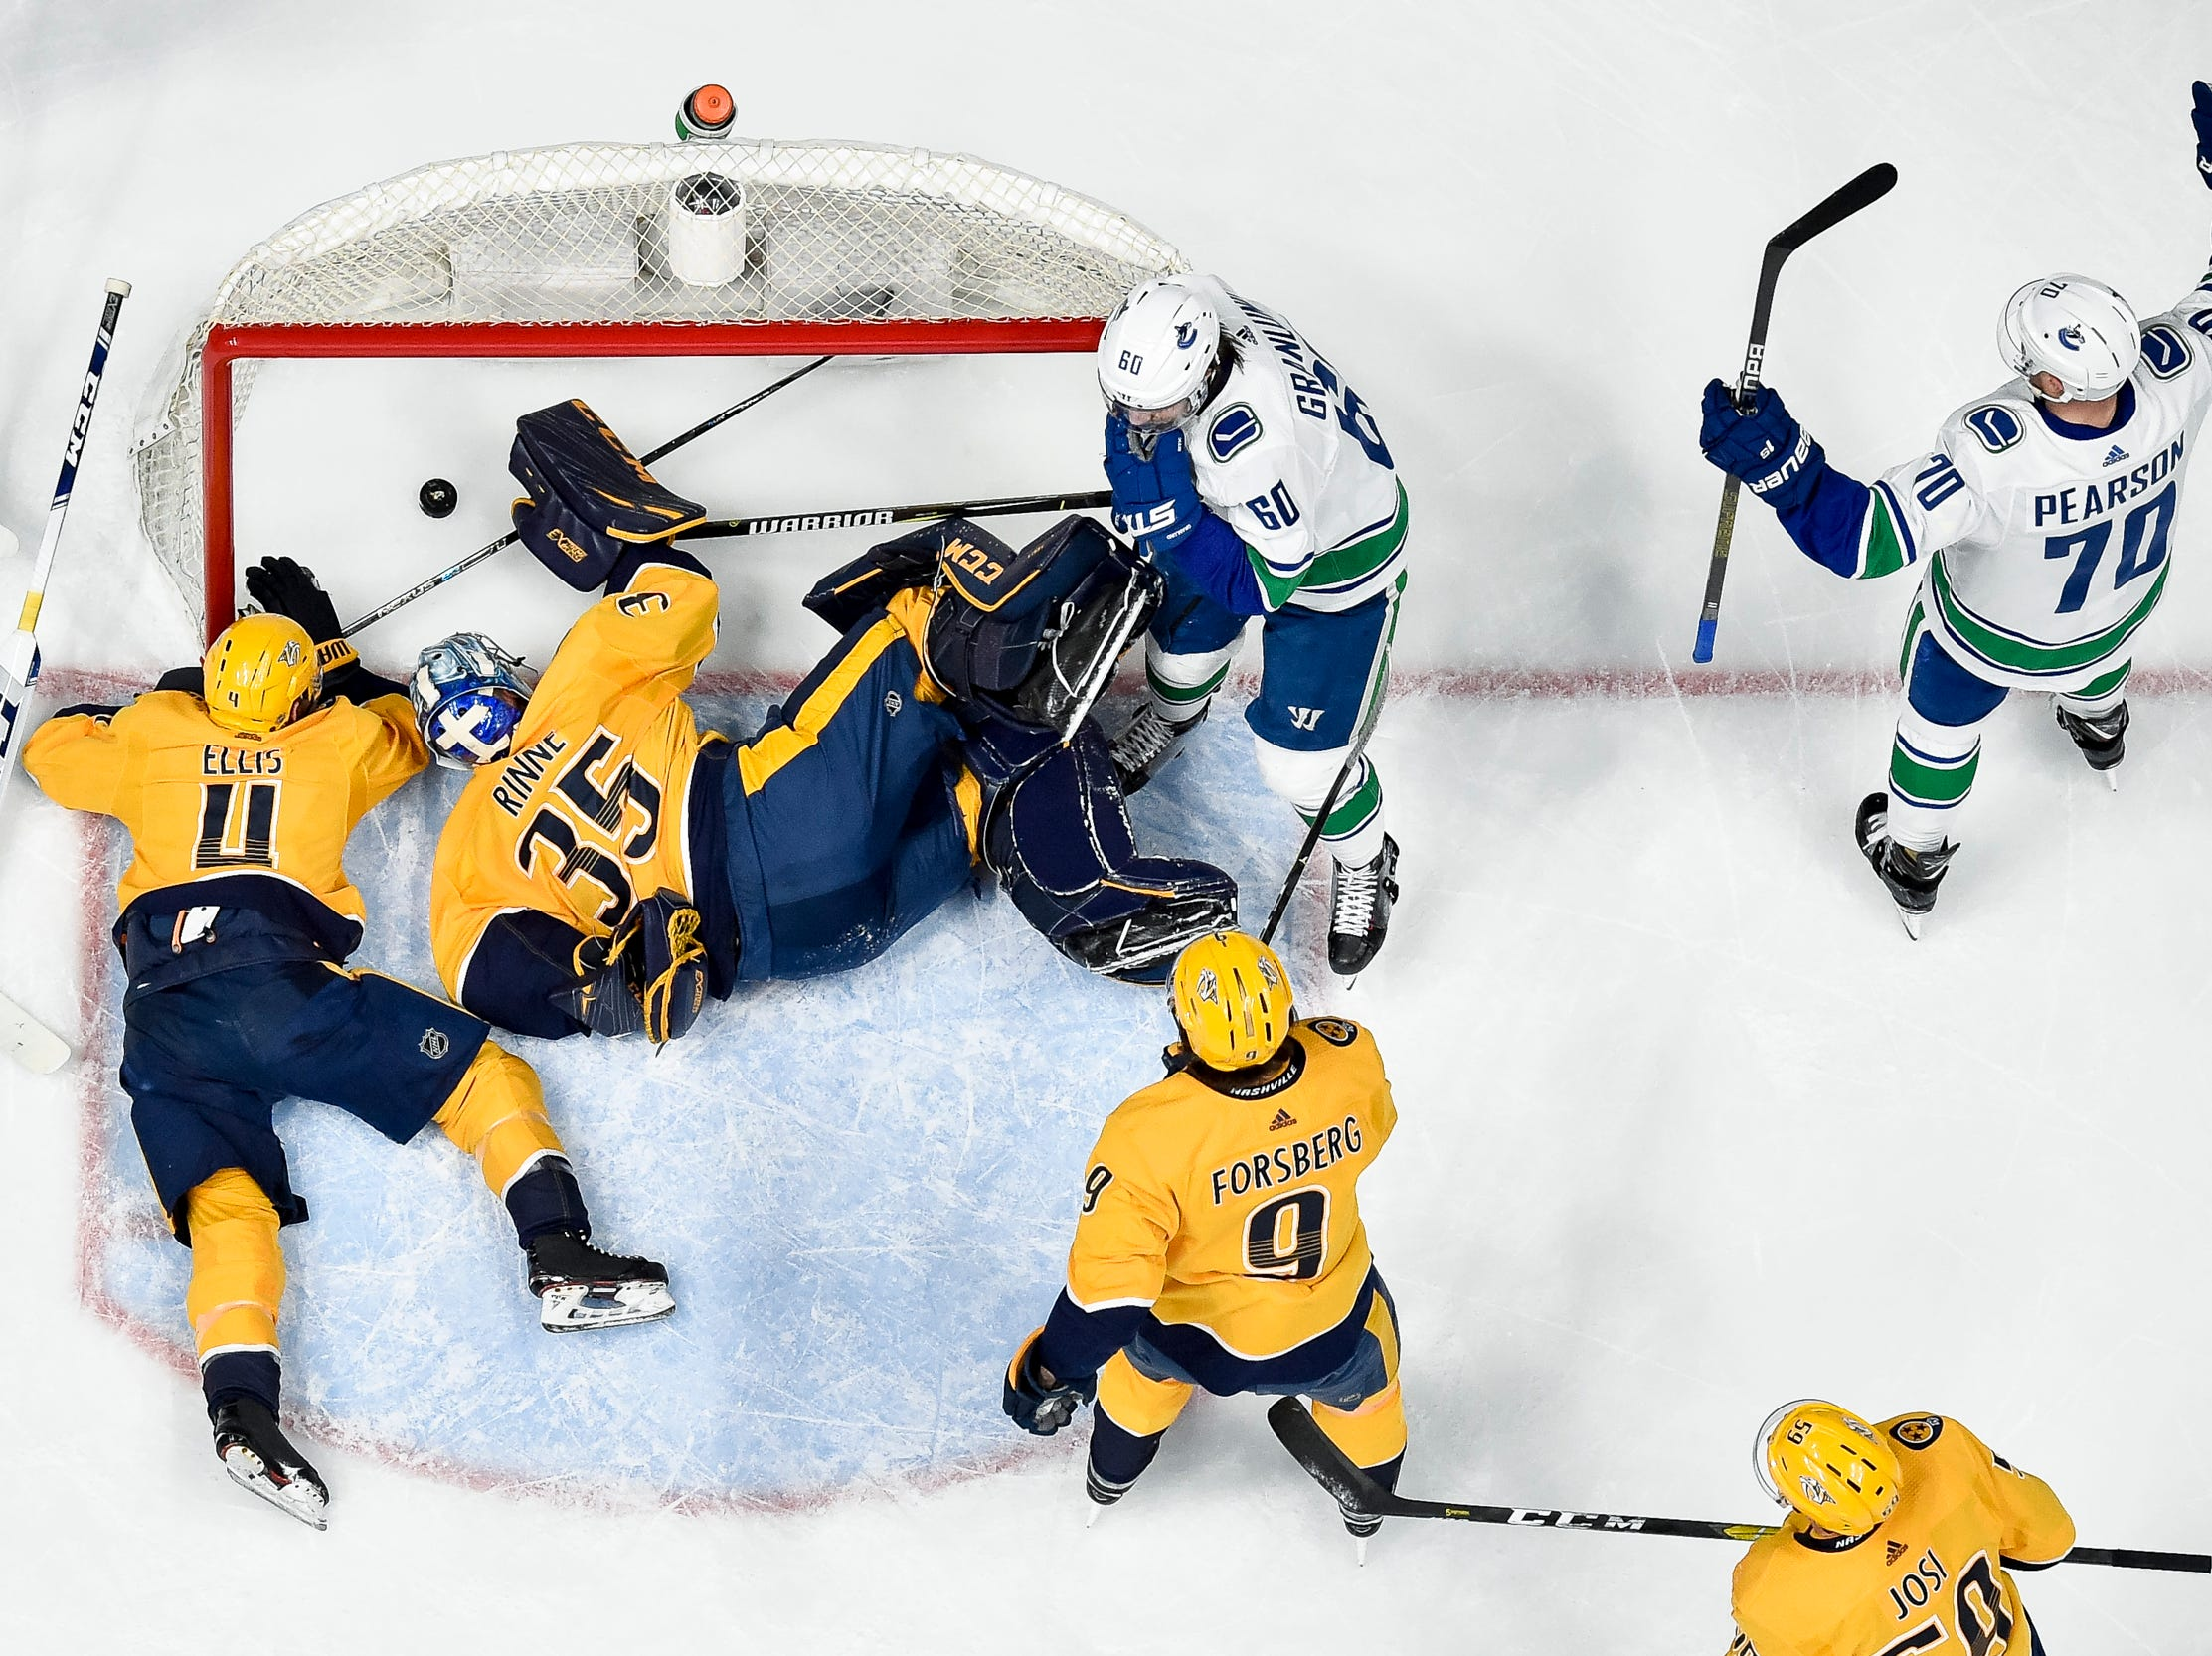 Vancouver Canucks left wing Tanner Pearson (70) reacts to scoring past Nashville Predators goaltender Pekka Rinne (35) during the first period at Bridgestone Arena in Nashville, Tenn., Thursday, April 4, 2019.